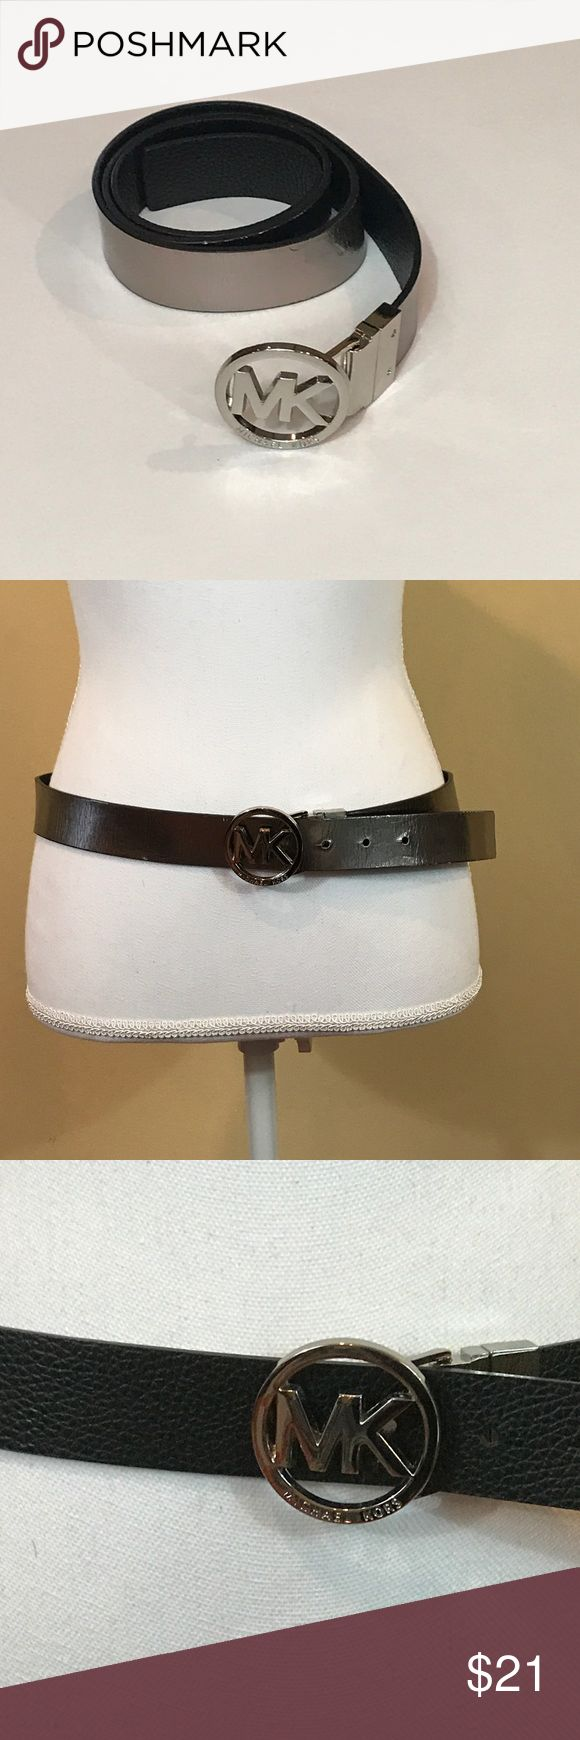 "Michael Kors 1 1/2 Inch Reversible Belt Michael Kors 1 1/2 Inch Reversible Belt Size Medium. The buckle pulls out and reverses for two different colors. One side is pebble black and the other side, gun metal. The leather without the buckle measure as approximately 38.5"". The buckle is approximately 1 3/4"" diameter. Michael Kors Accessories Belts"